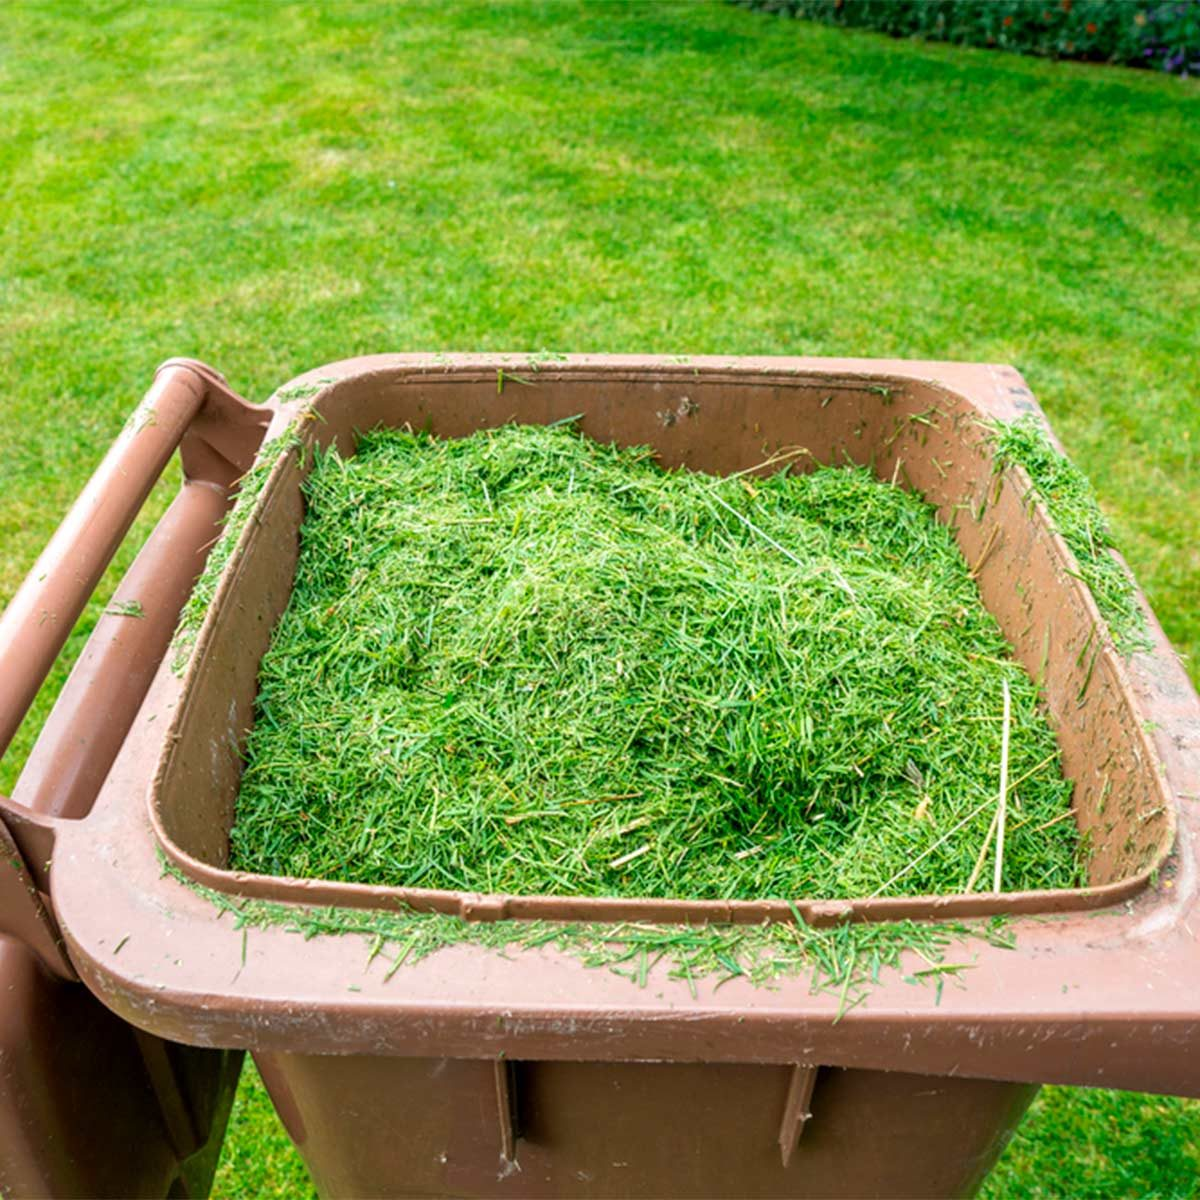 bin of grass clippings